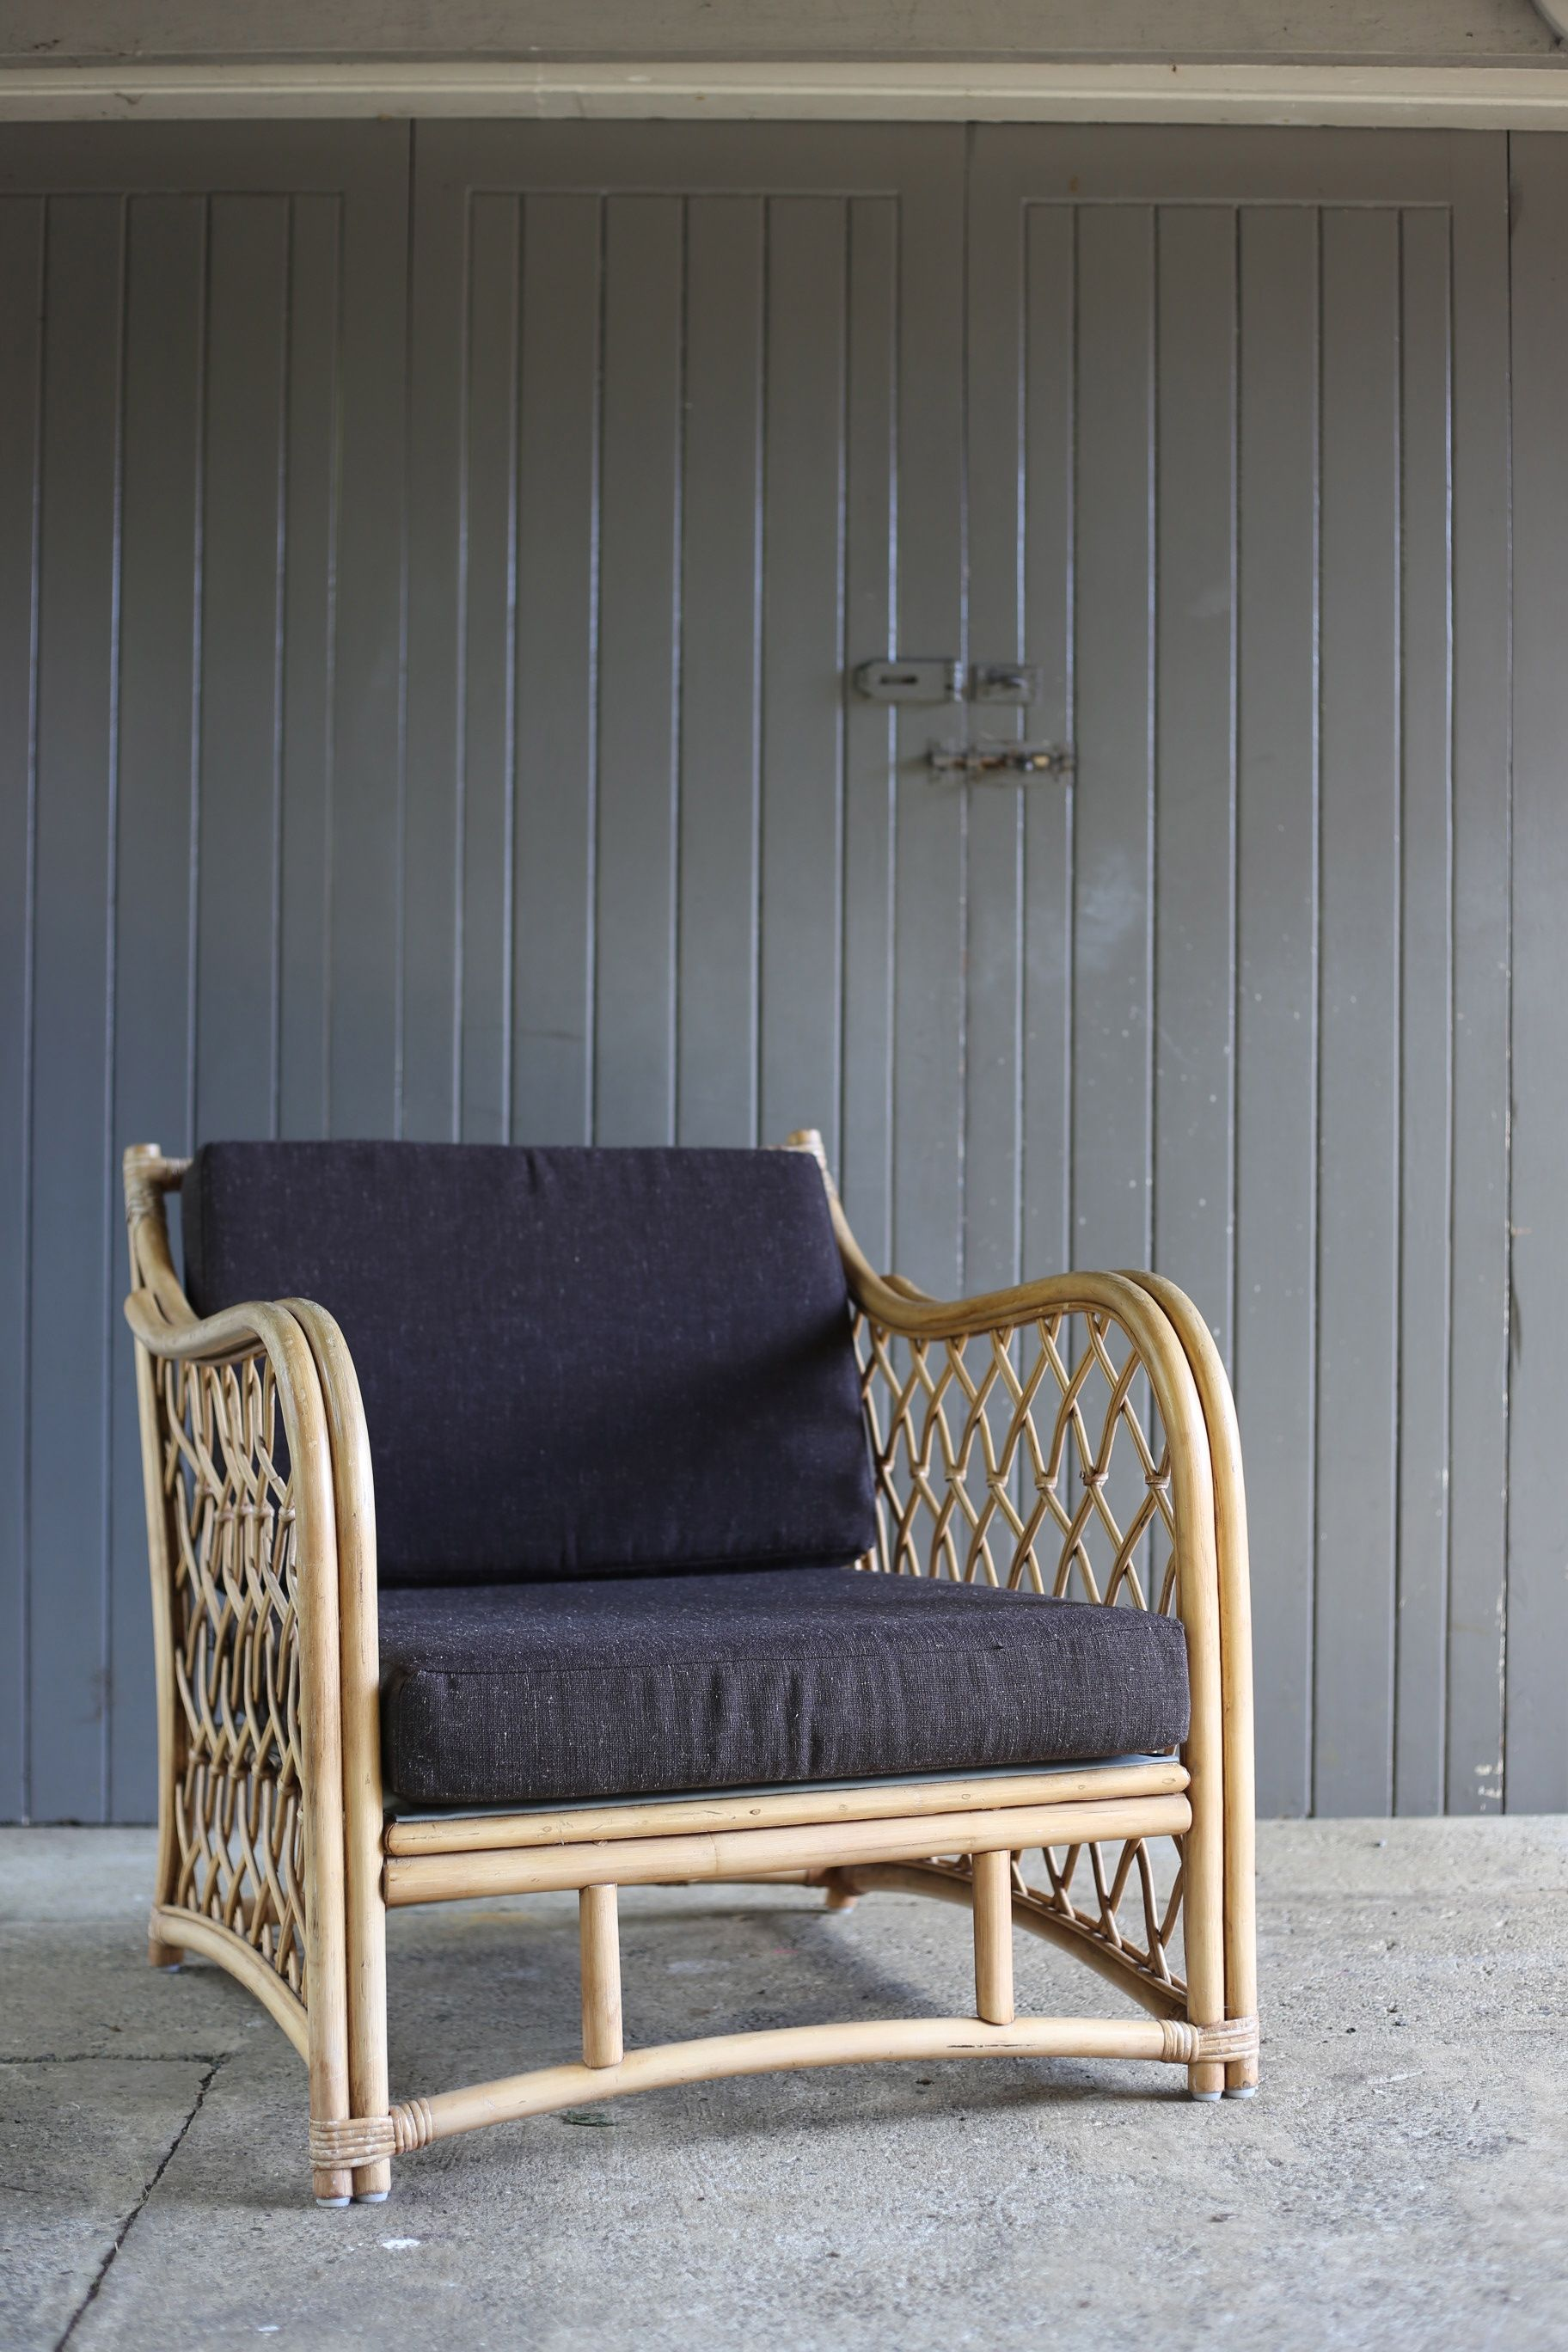 Superb #retro #cane #chair #grey #squabs X2 With #matchingcouch #placesandgraces